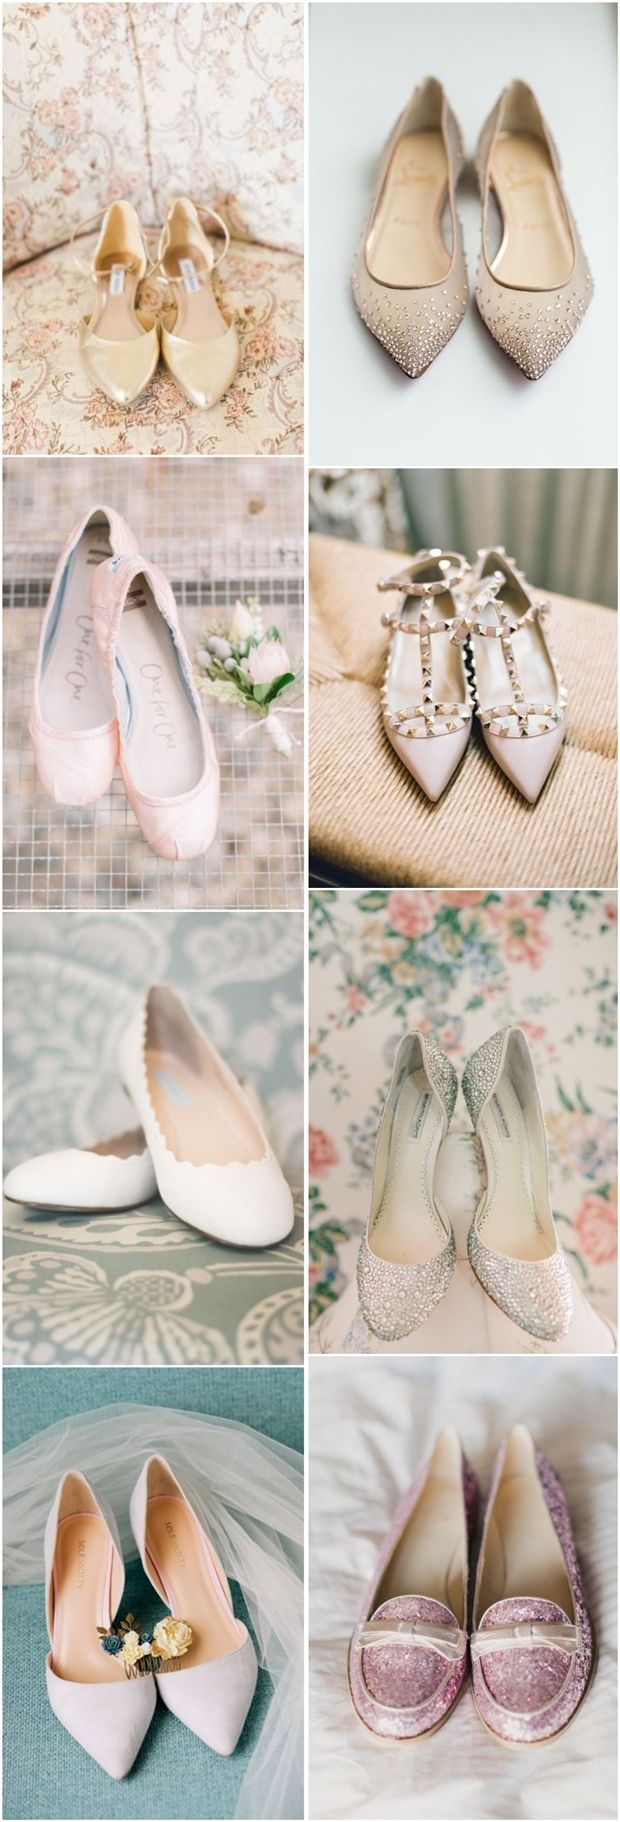 sparkle wedding shoes comfortable wedding shoes 25 Best Ideas about Sparkle Wedding Shoes on Pinterest Bridesmaid flats Sparkly sandals and Bridesmaid shoes